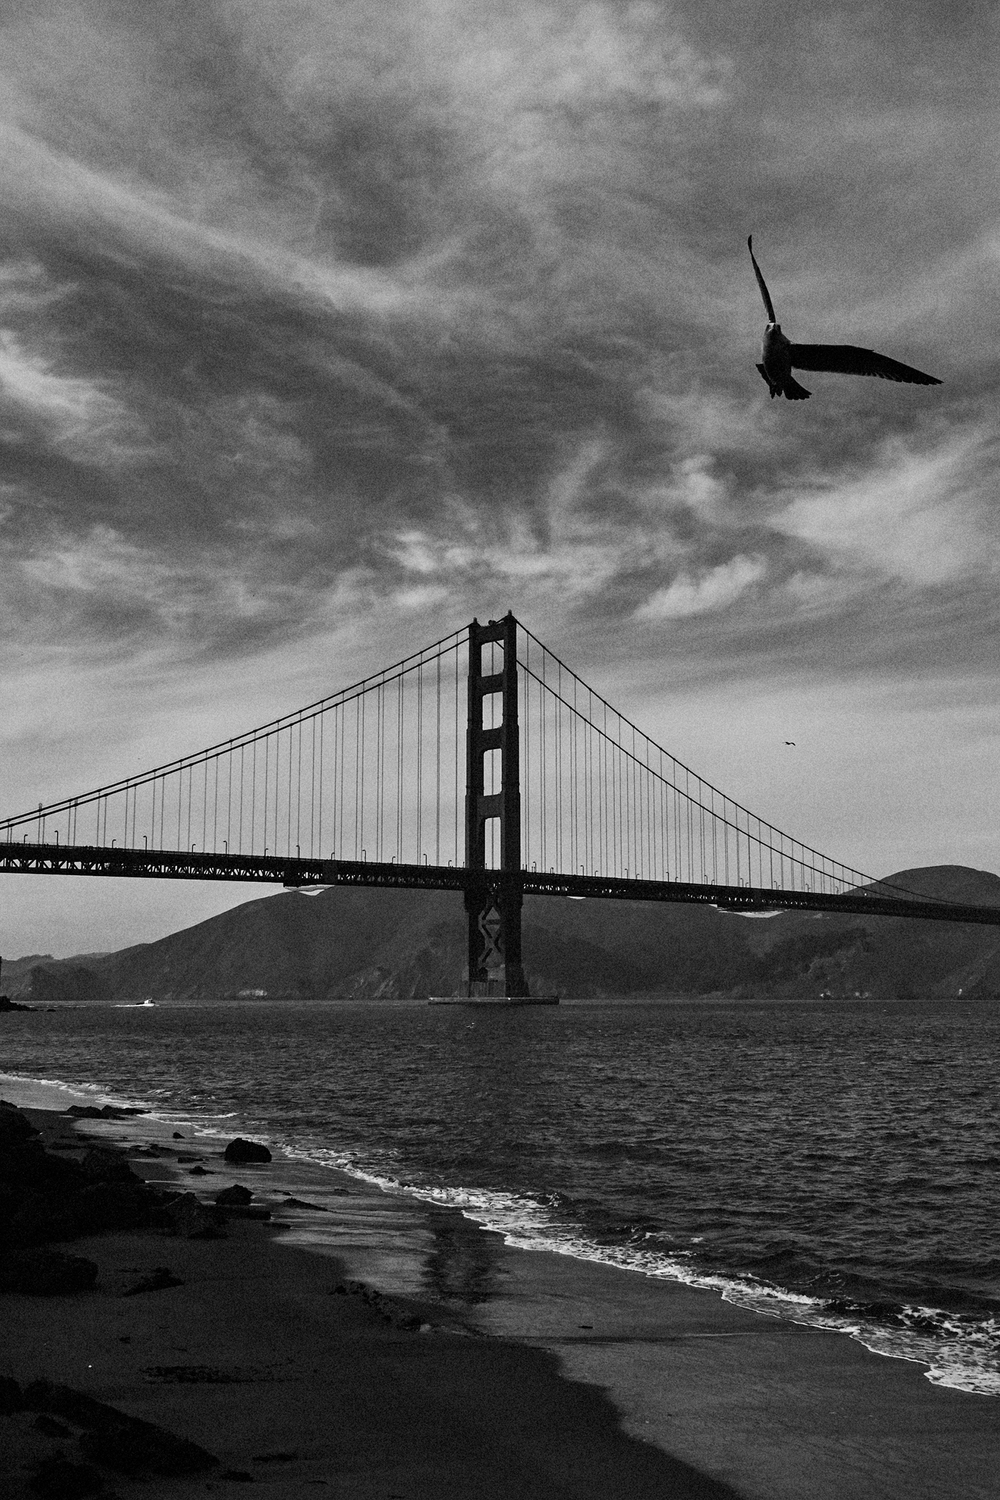 San_Francisco_Golden_Gate_Bridge_Analog_Film_Kodak_Tri-X_Minolta_a7_1698.png